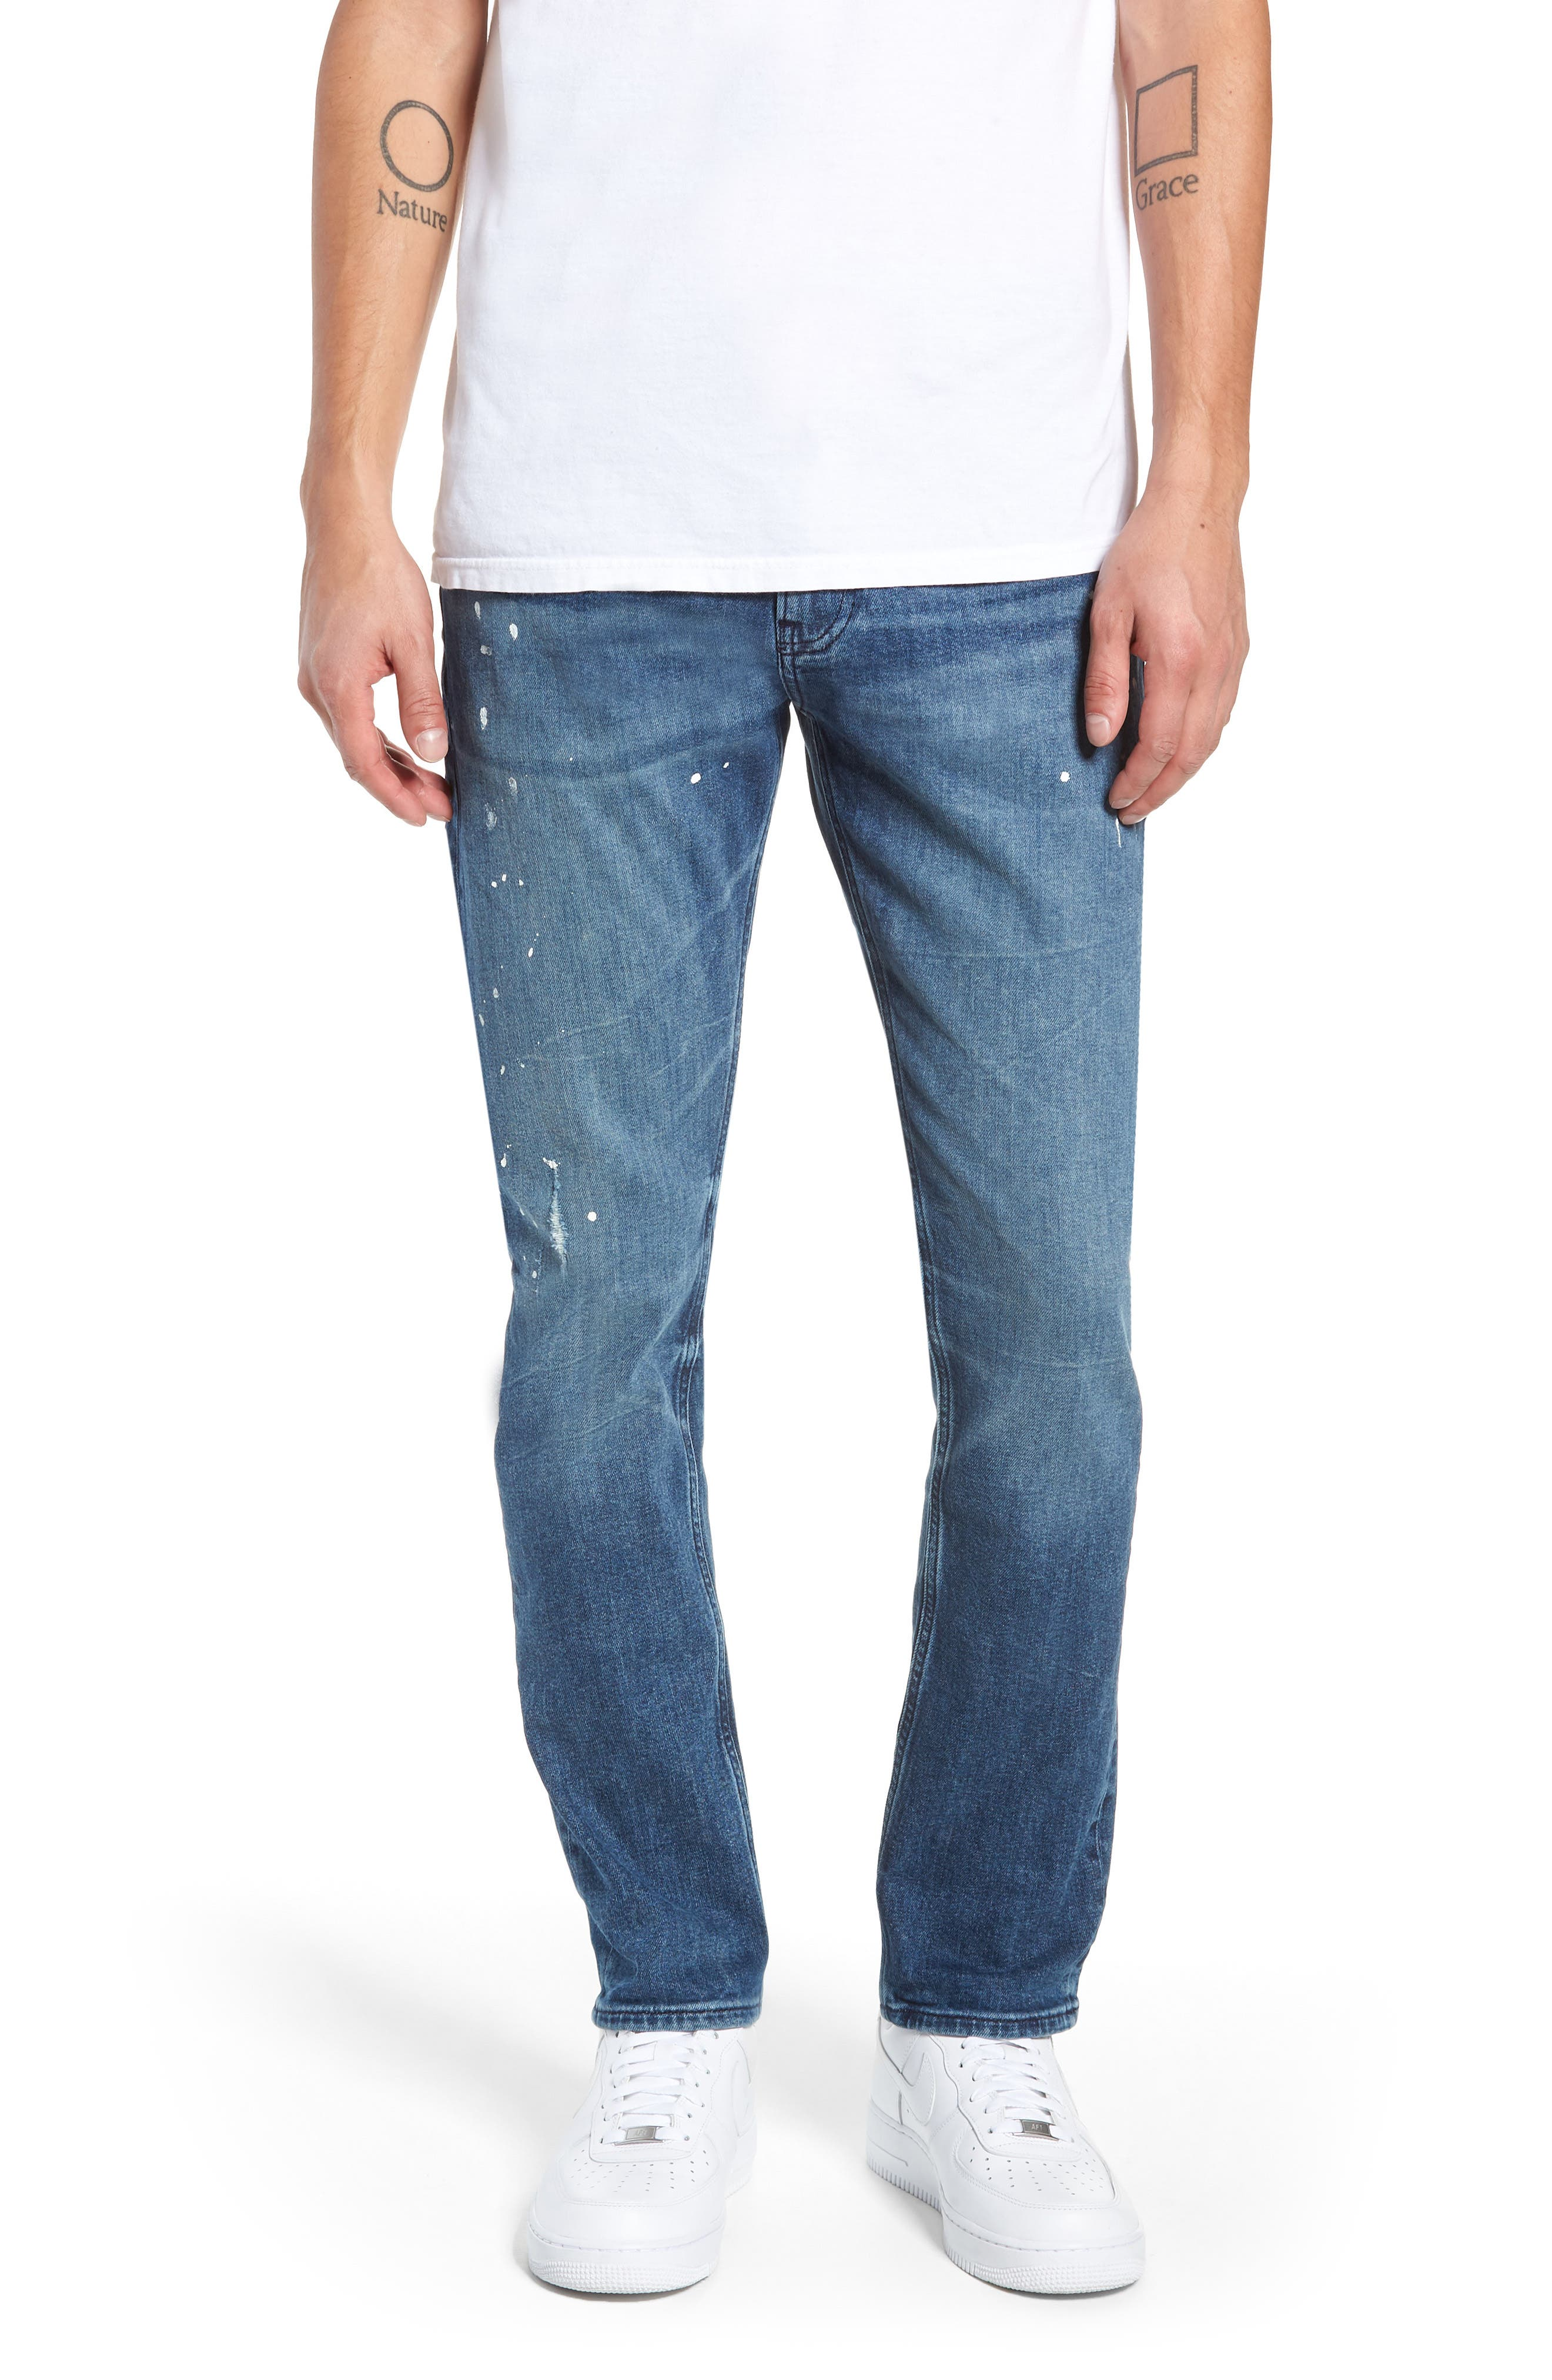 Calvin Klein Slim Fit Jeans,                         Main,                         color, KINGPIN BLUE